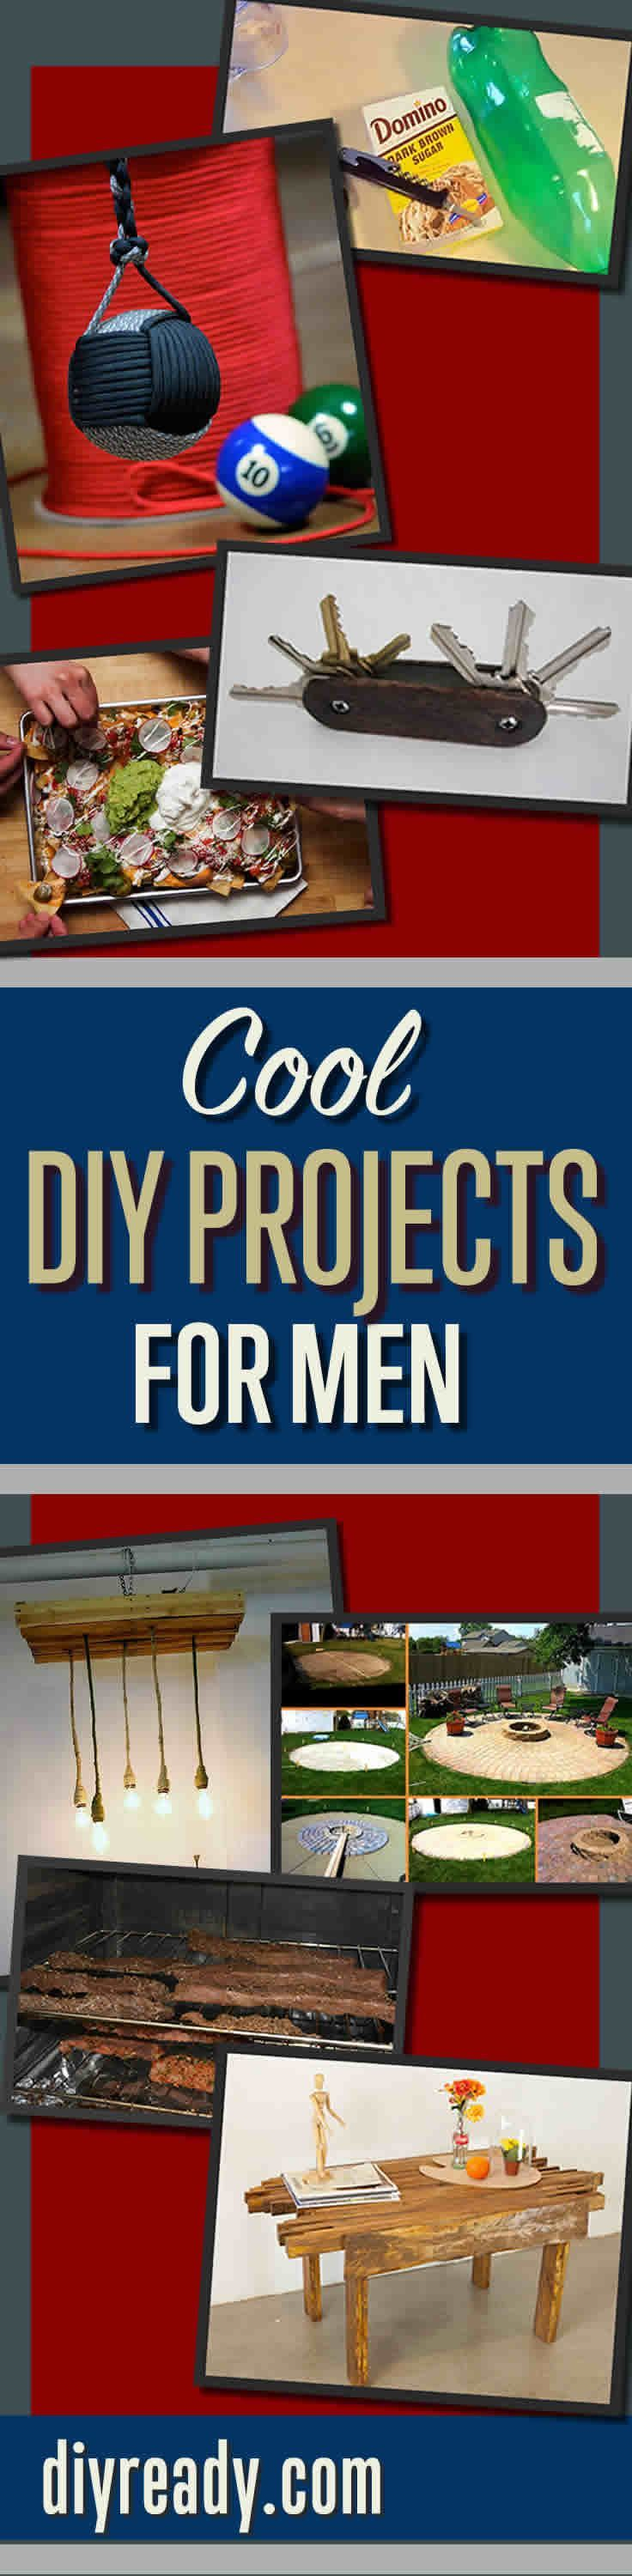 Cool diy projects for men and do it yourself tutorials ideas guys cool diy projects for men and do it yourself tutorials ideas guys love diy ready solutioingenieria Gallery